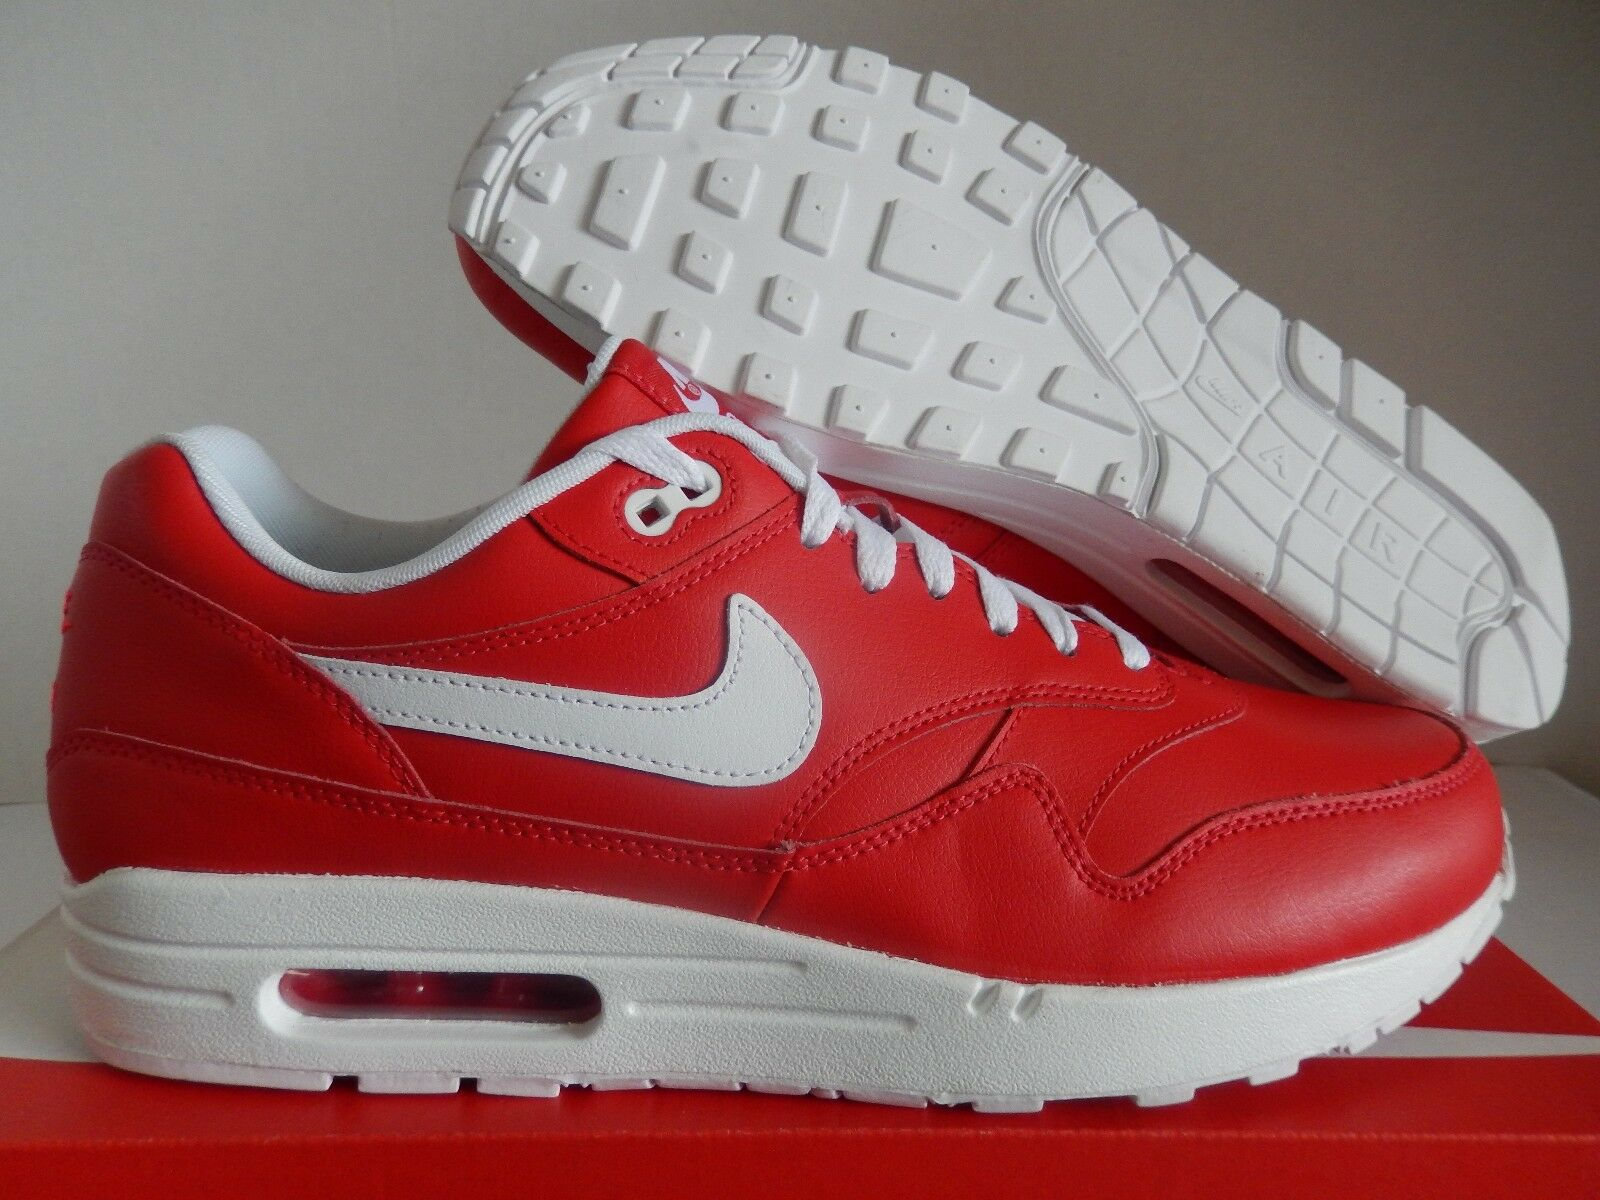 Nike air max 1 id [943756-991] red-white sz 11,5 [943756-991] id e884a8